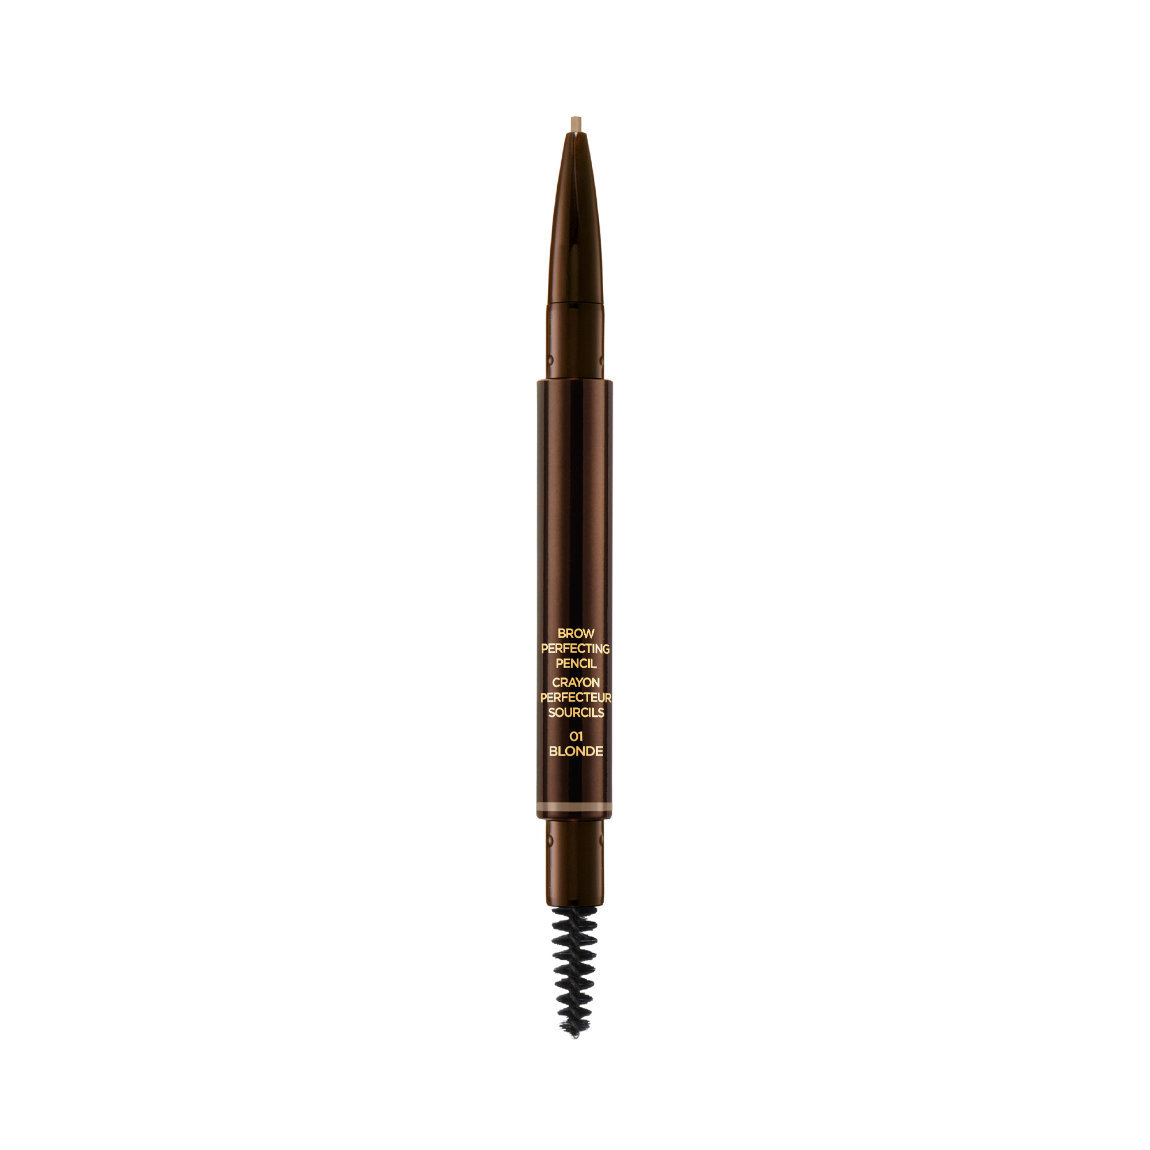 TOM FORD Brow Perfecting Pencil Blonde alternative view 1 - product swatch.